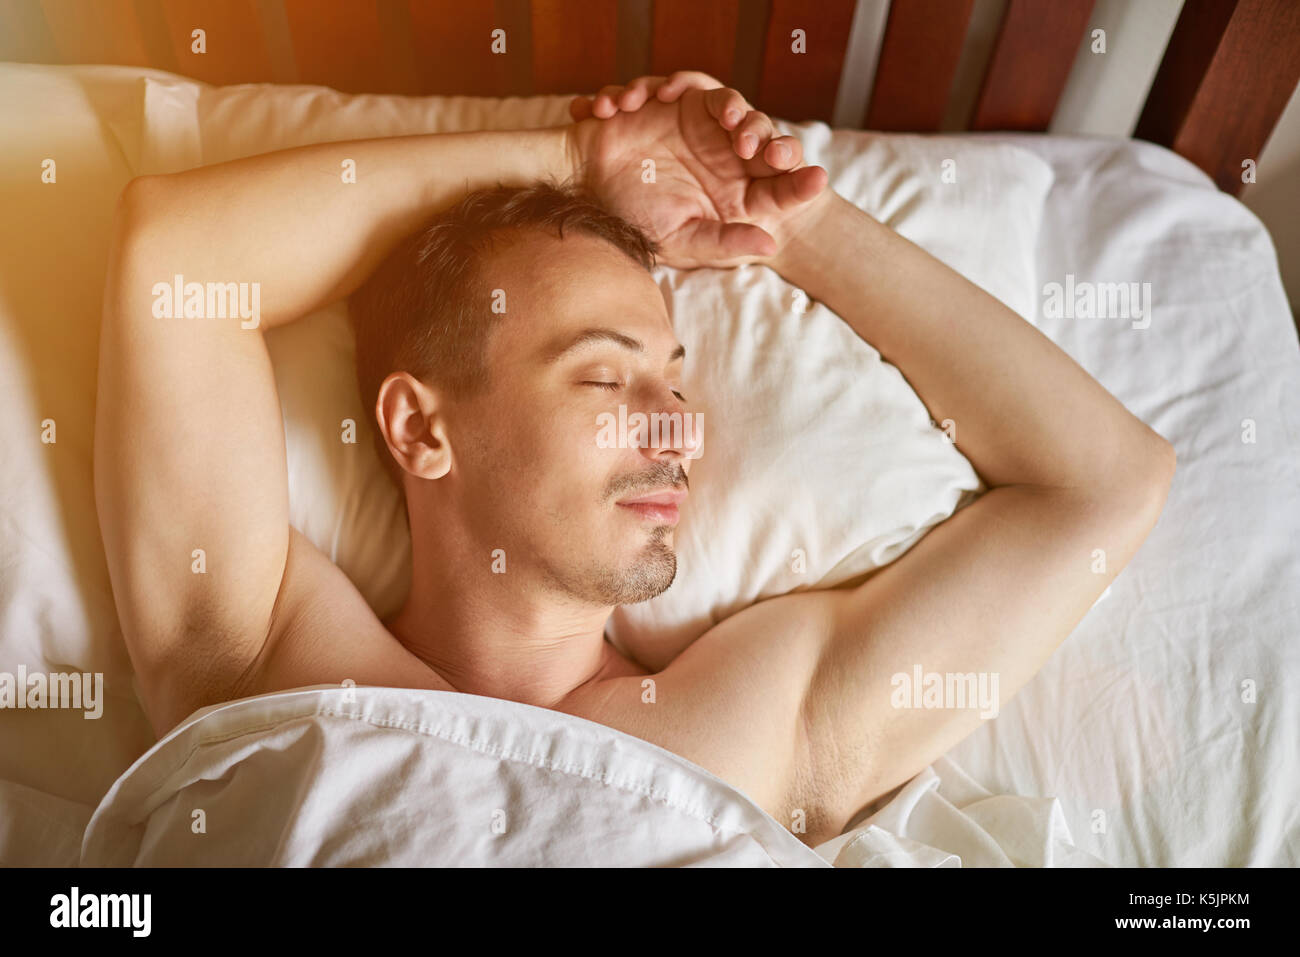 One Young Men Sleeping In Bed Above View Stock Photo Alamy